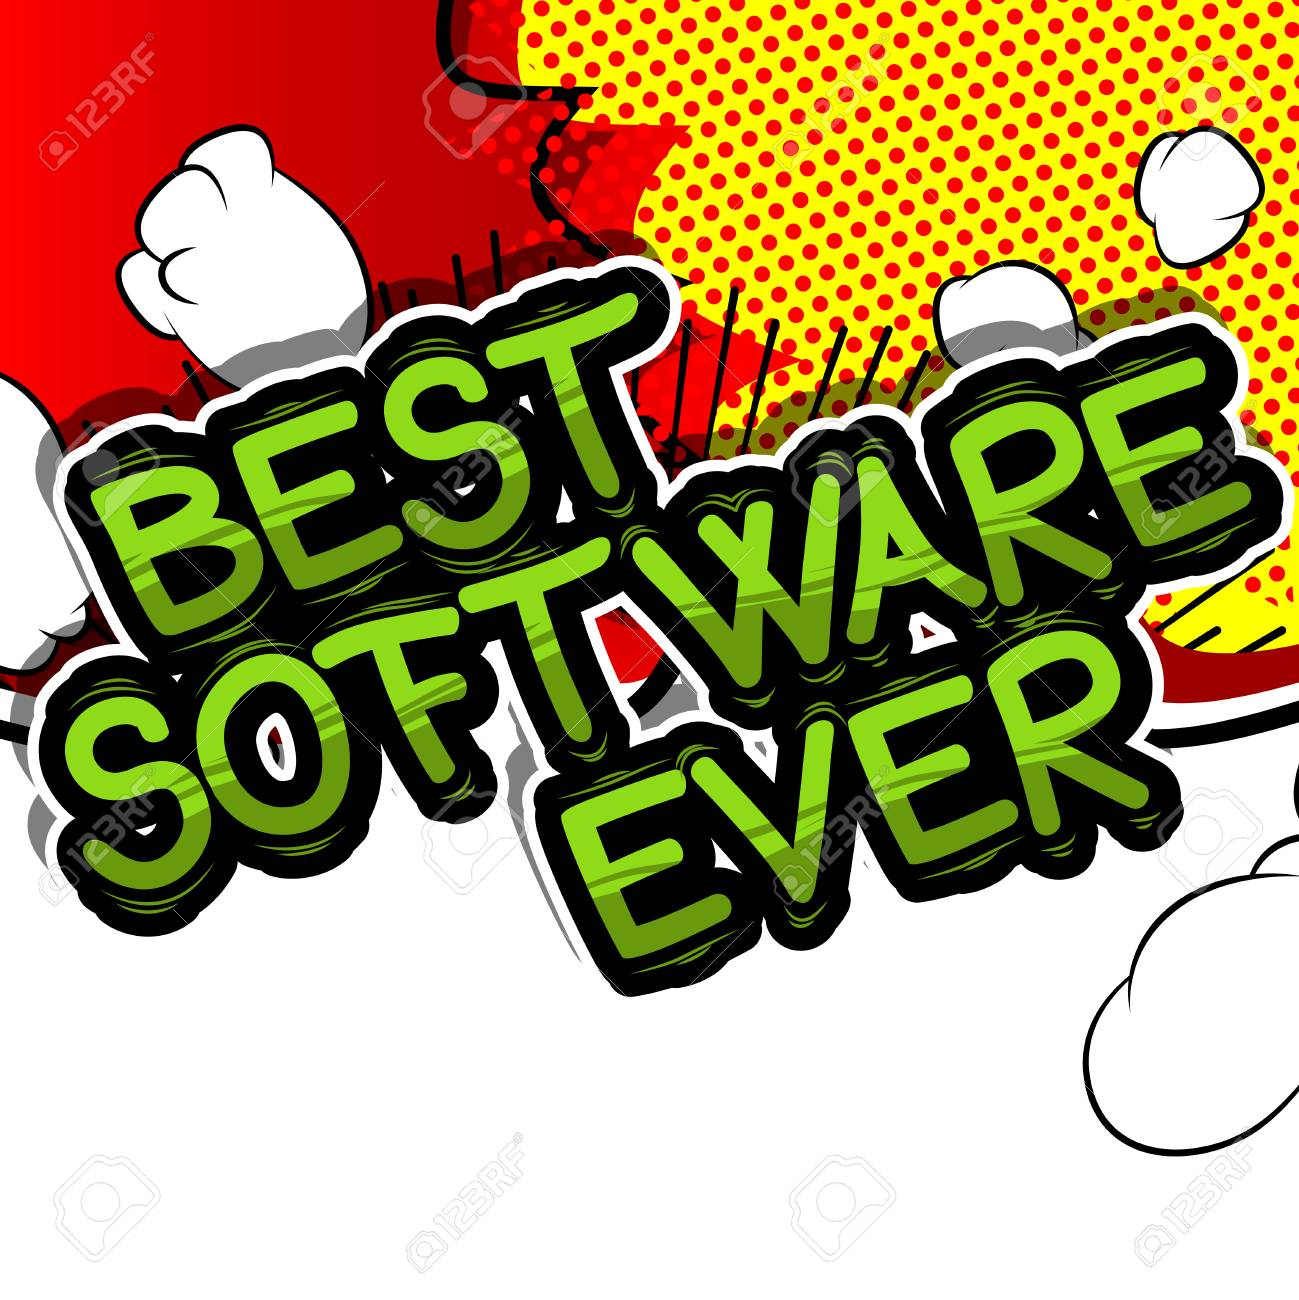 best software for vector graphics